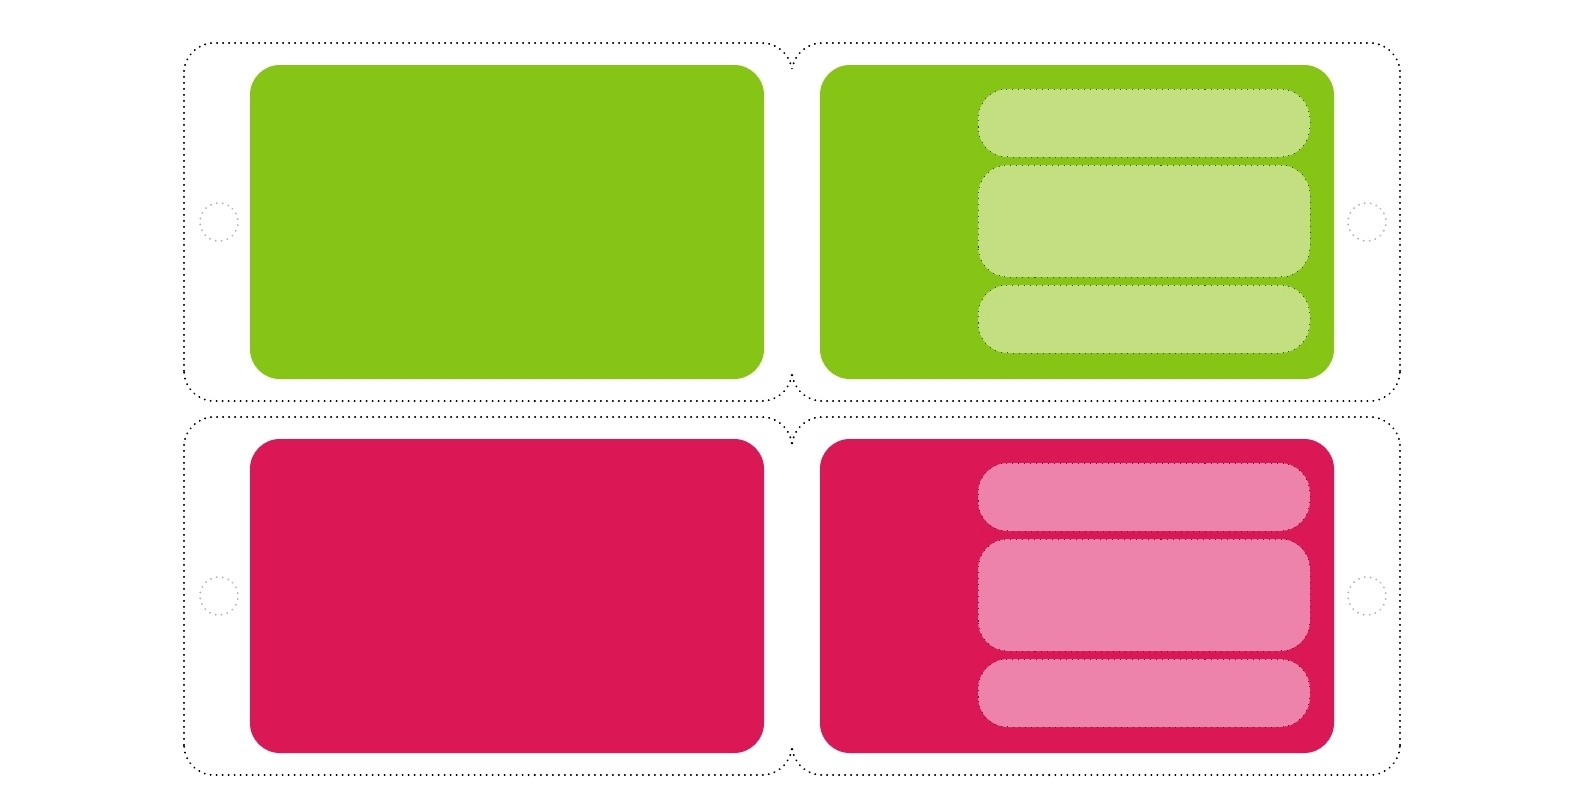 the luggage tag template 3 can help you make a professional and luggage tag template